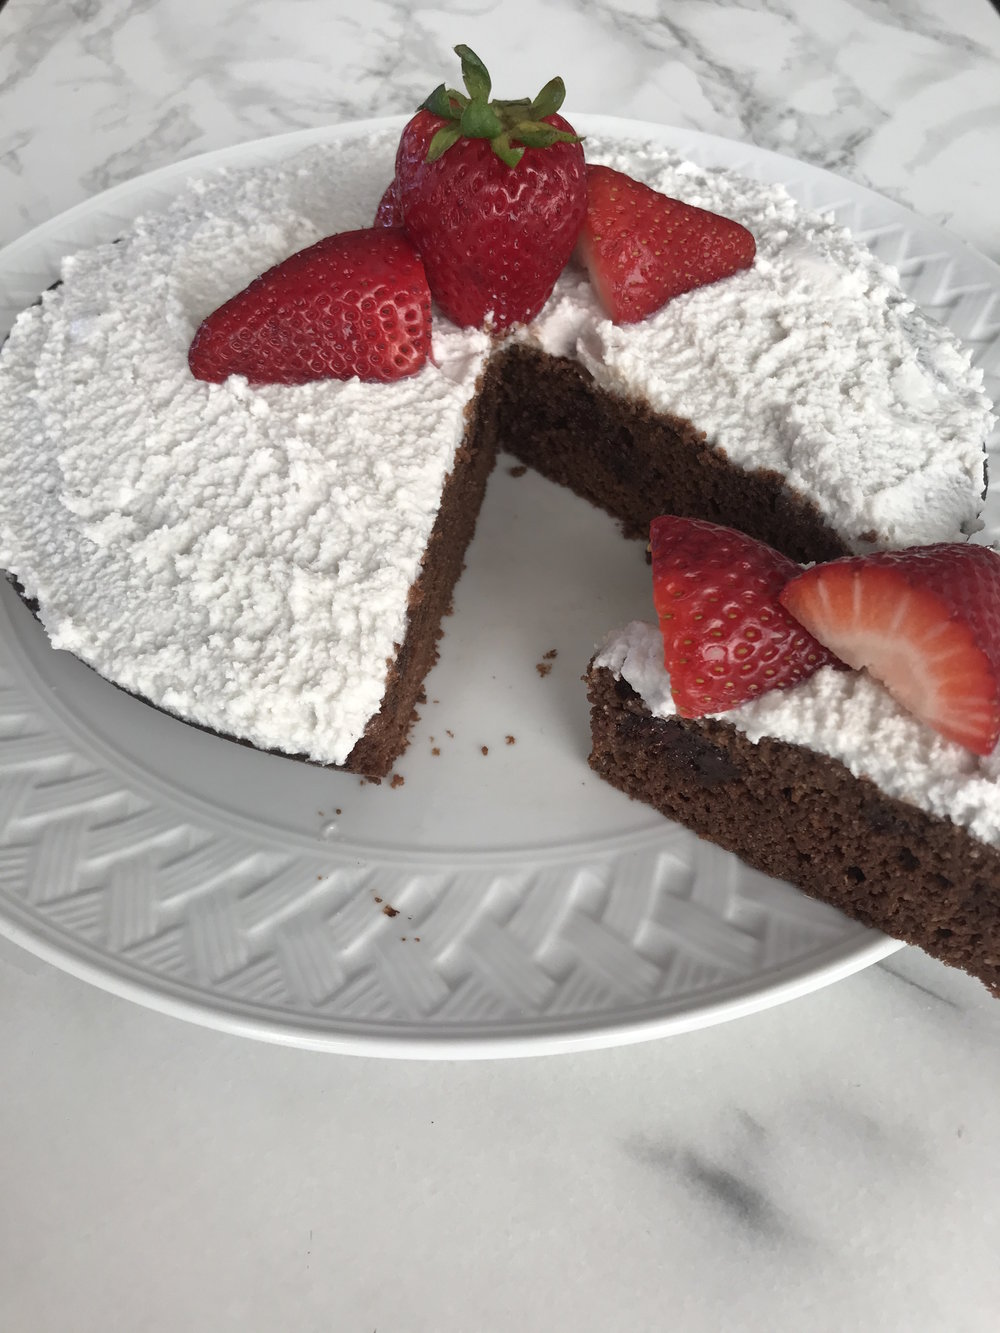 - Strawberries were a great combo with the chocolate and icing. But, like I said, you can use whatever you like!